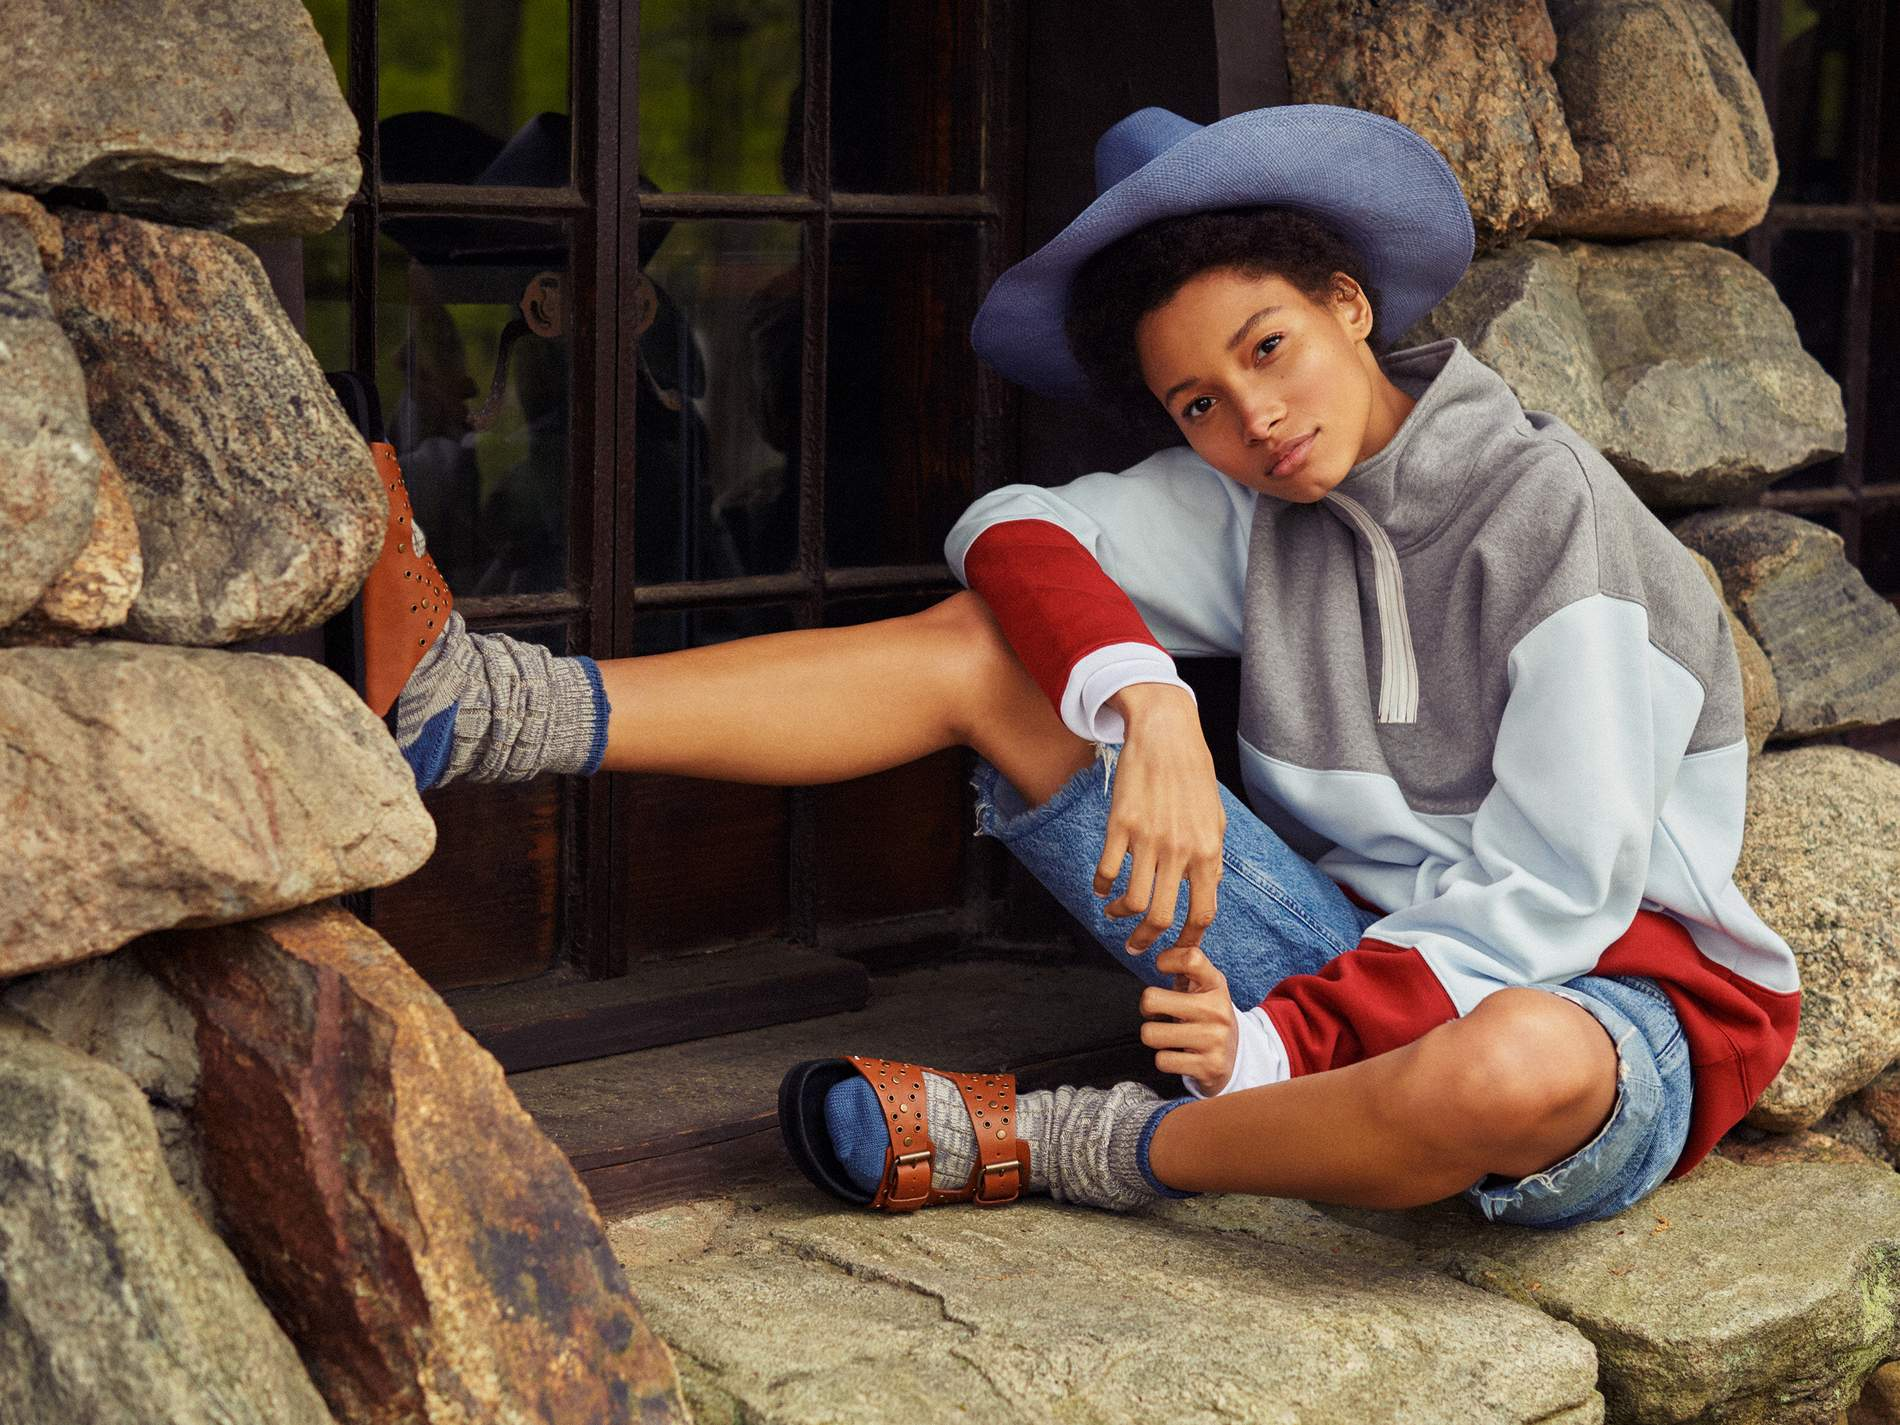 Sweater Acne Studios; shorts Agolde; socks stylist's own; shoes Isabel Marant; hat Clyde.